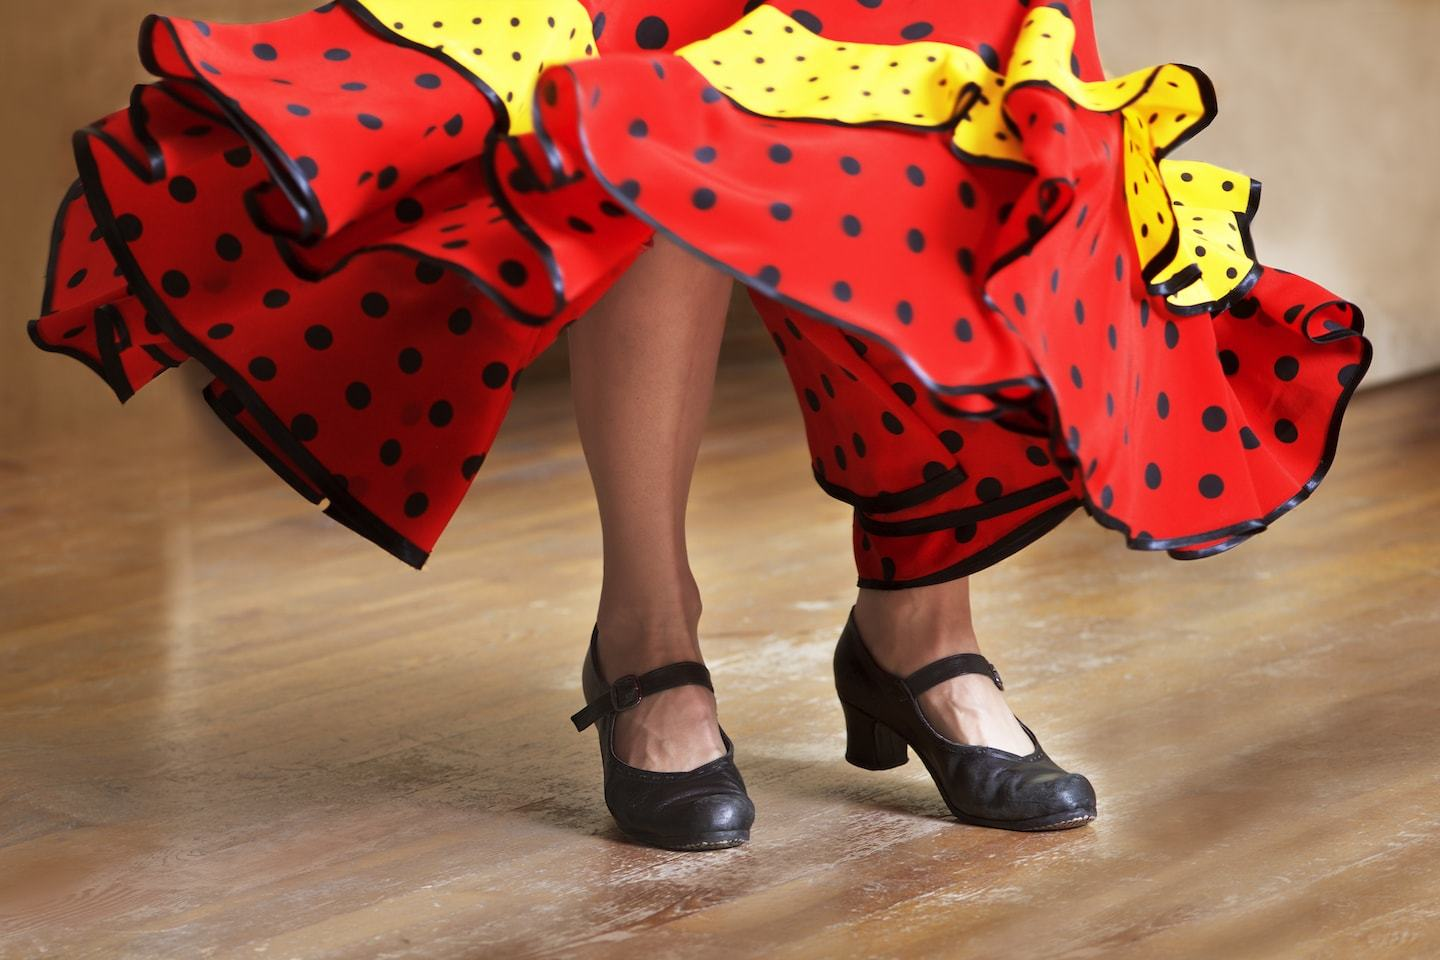 view of a woman's feet and bottom of her red and yellow dress as she dances flamenco